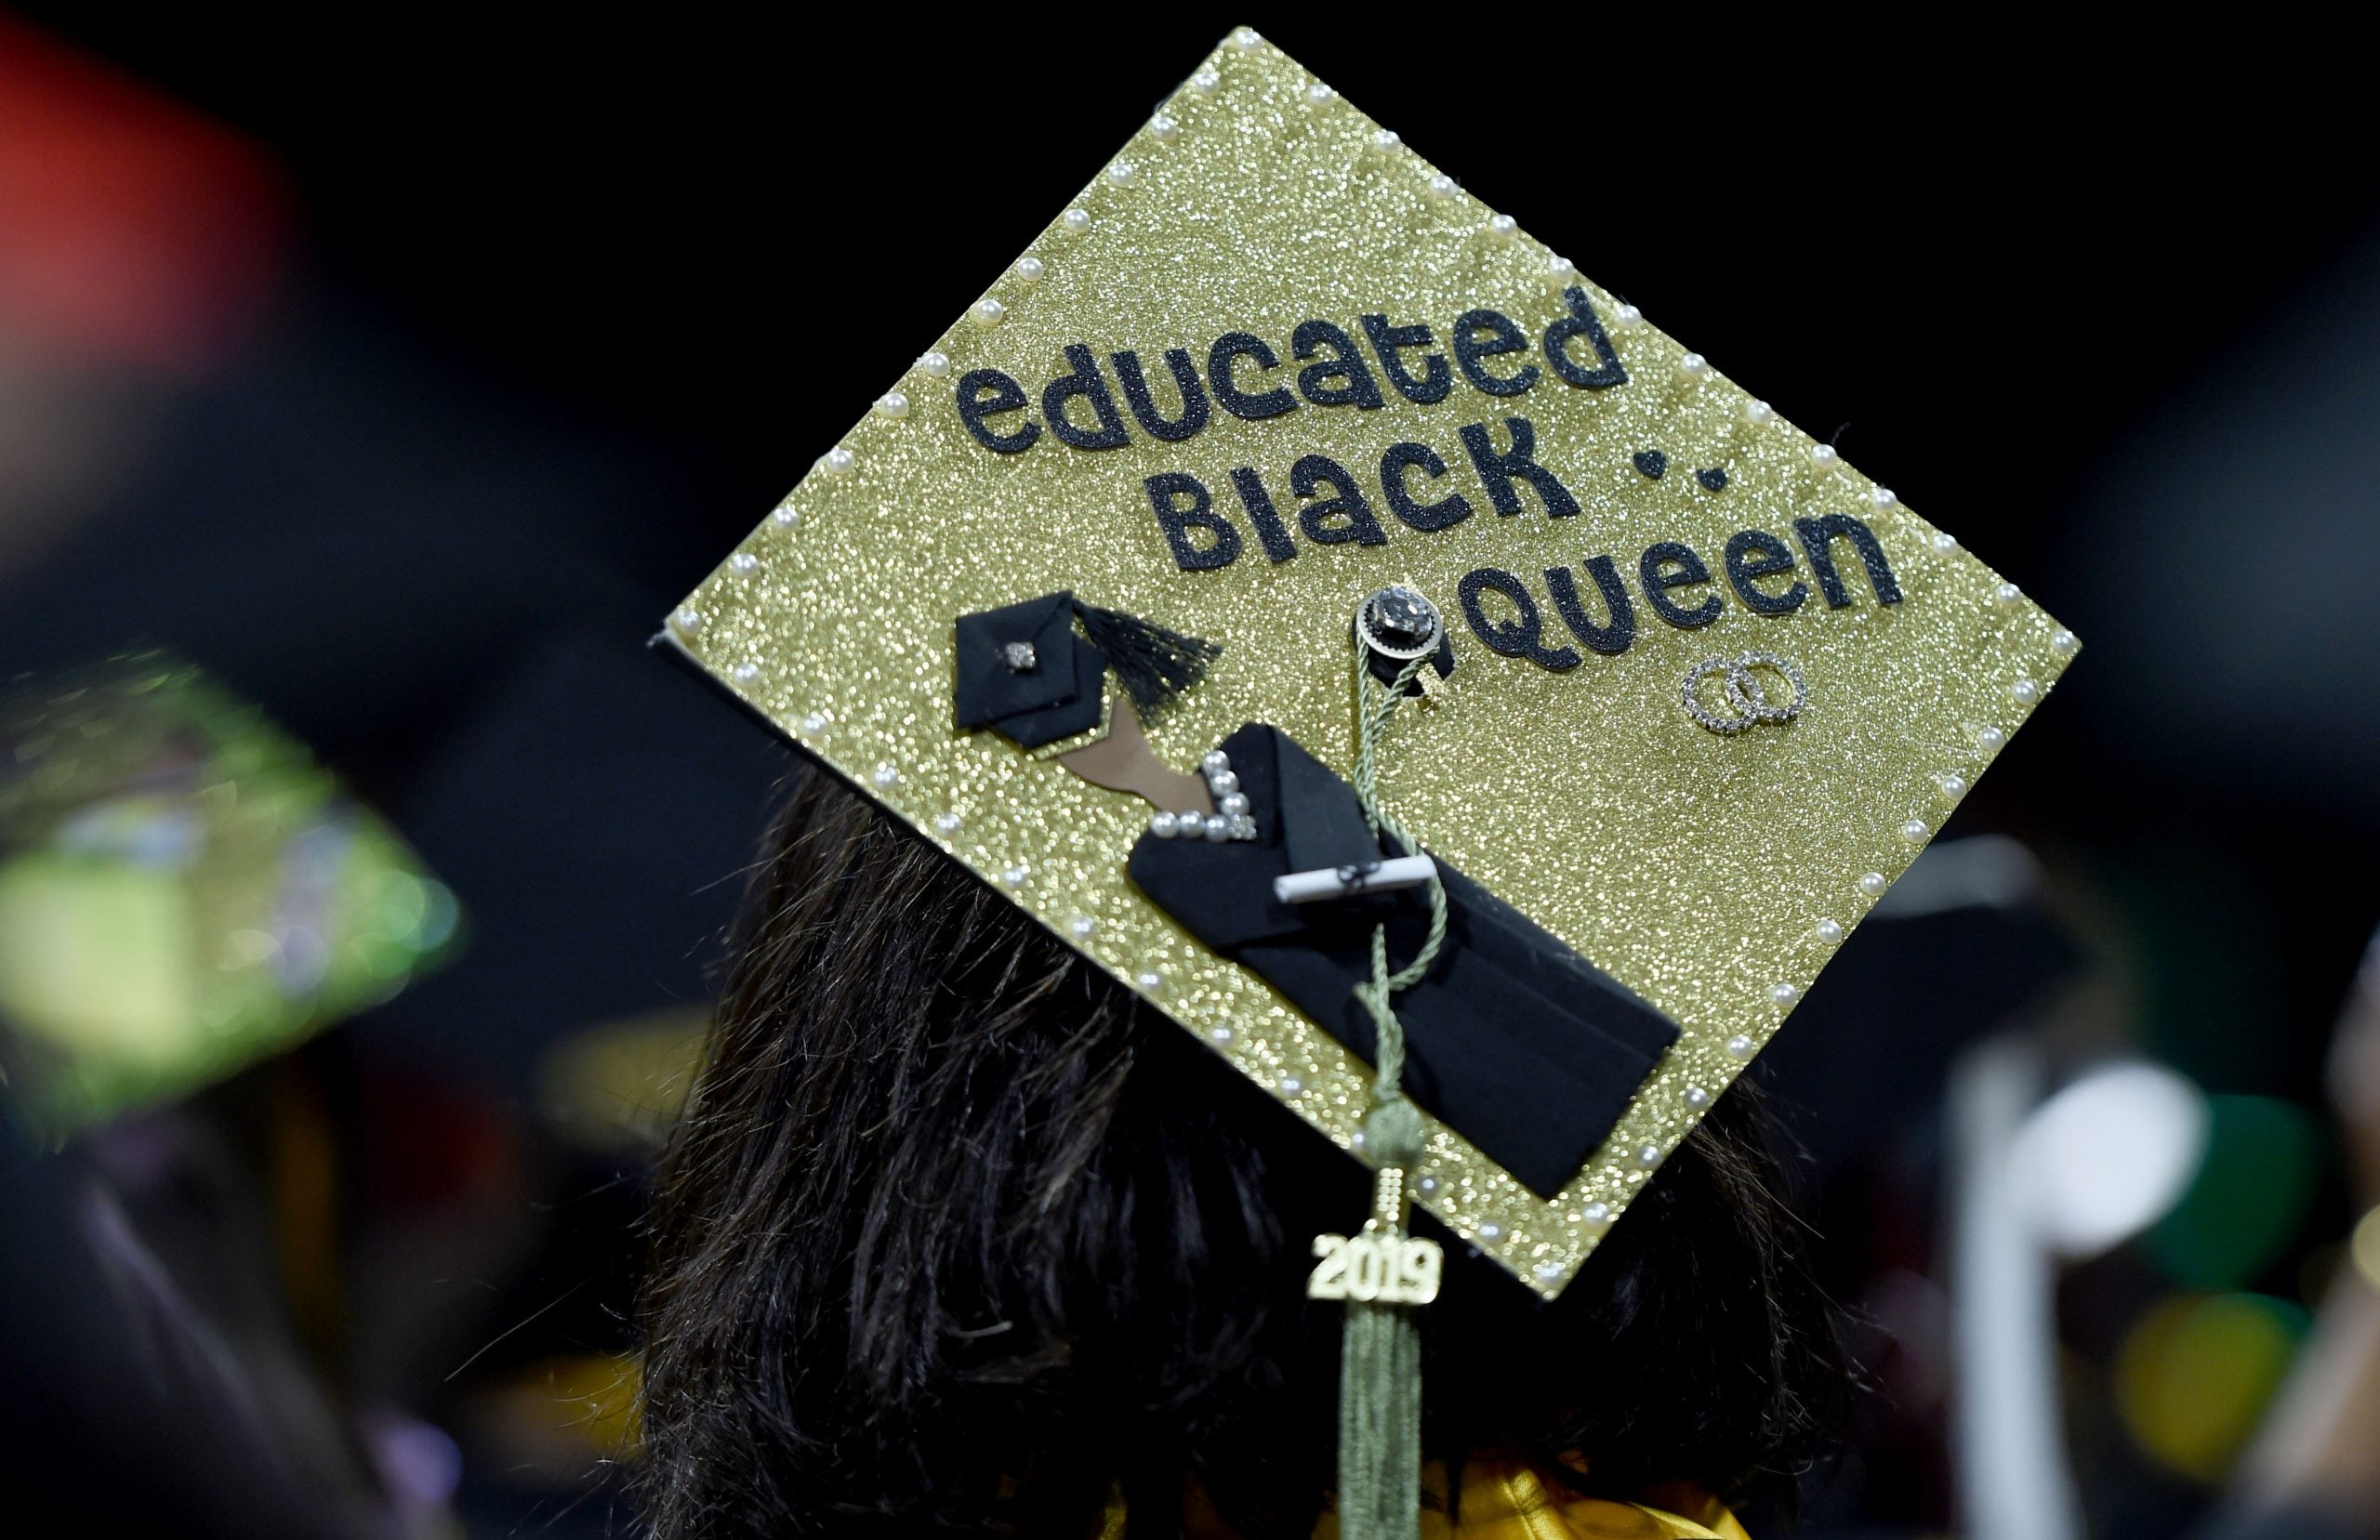 Black graduate. Karl Rove took issue with the words Barack Obama imparted on HBCU students.